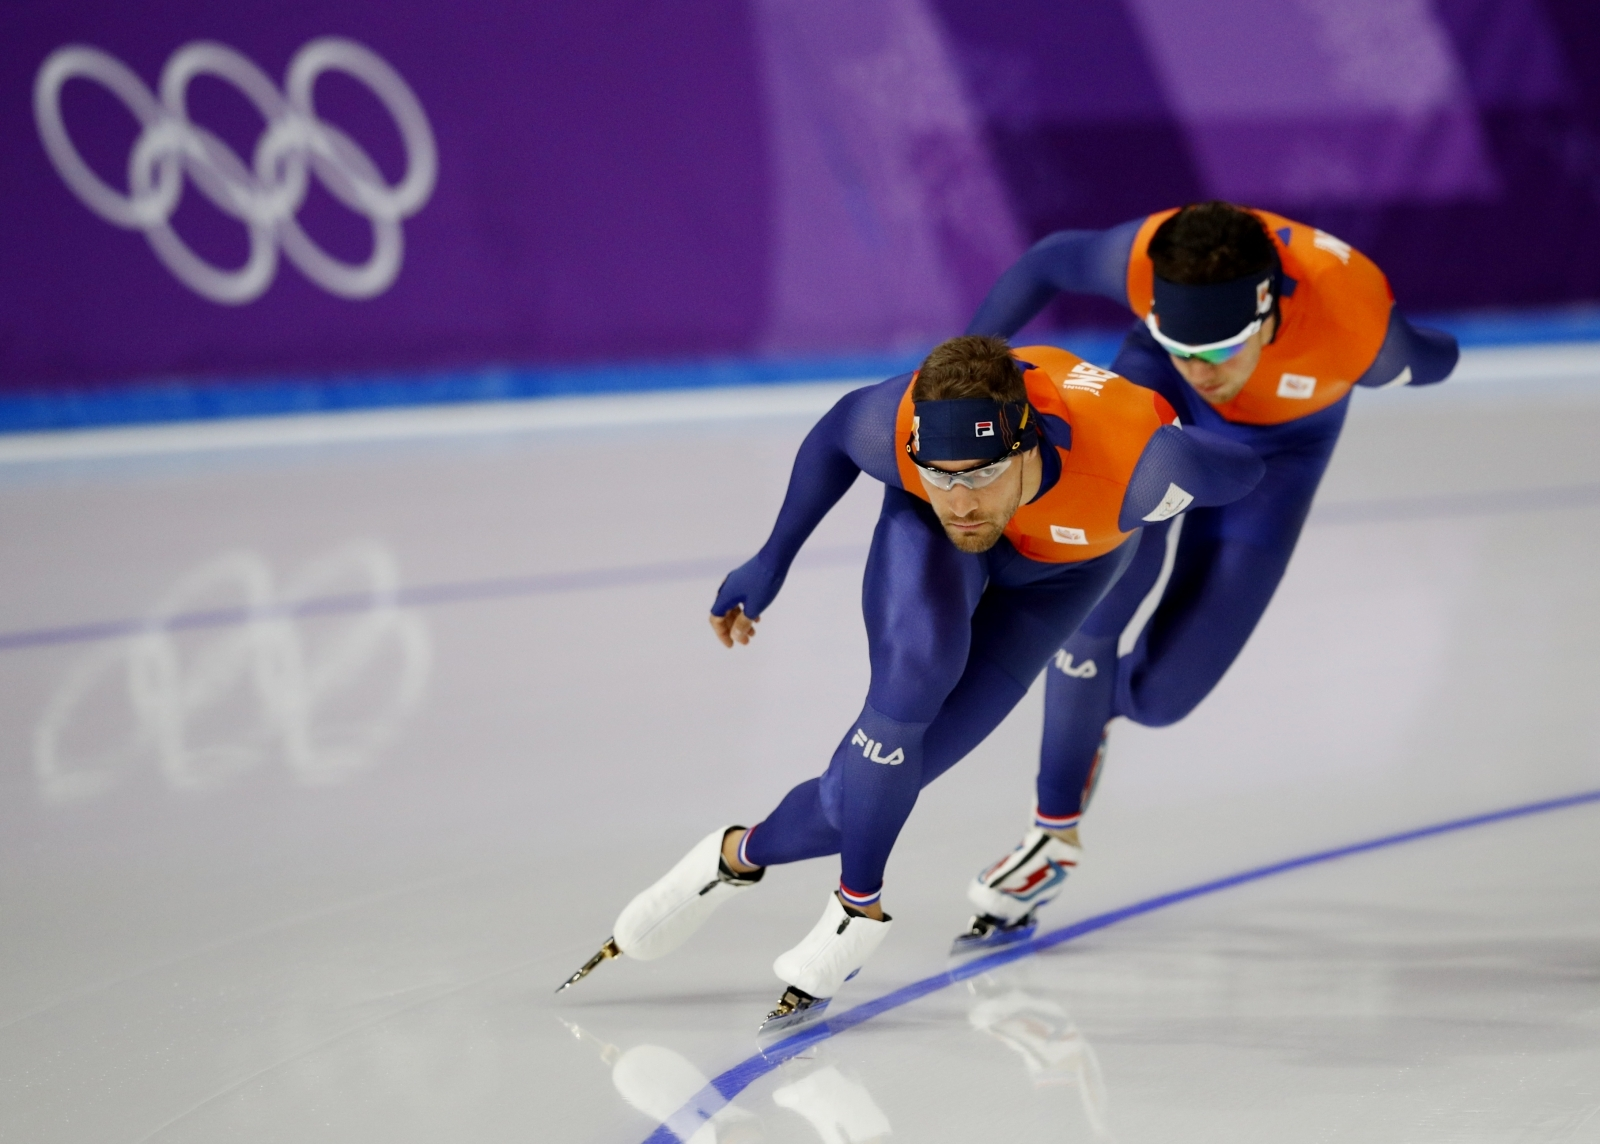 Couric tweets apology to Dutch for Olympic comment